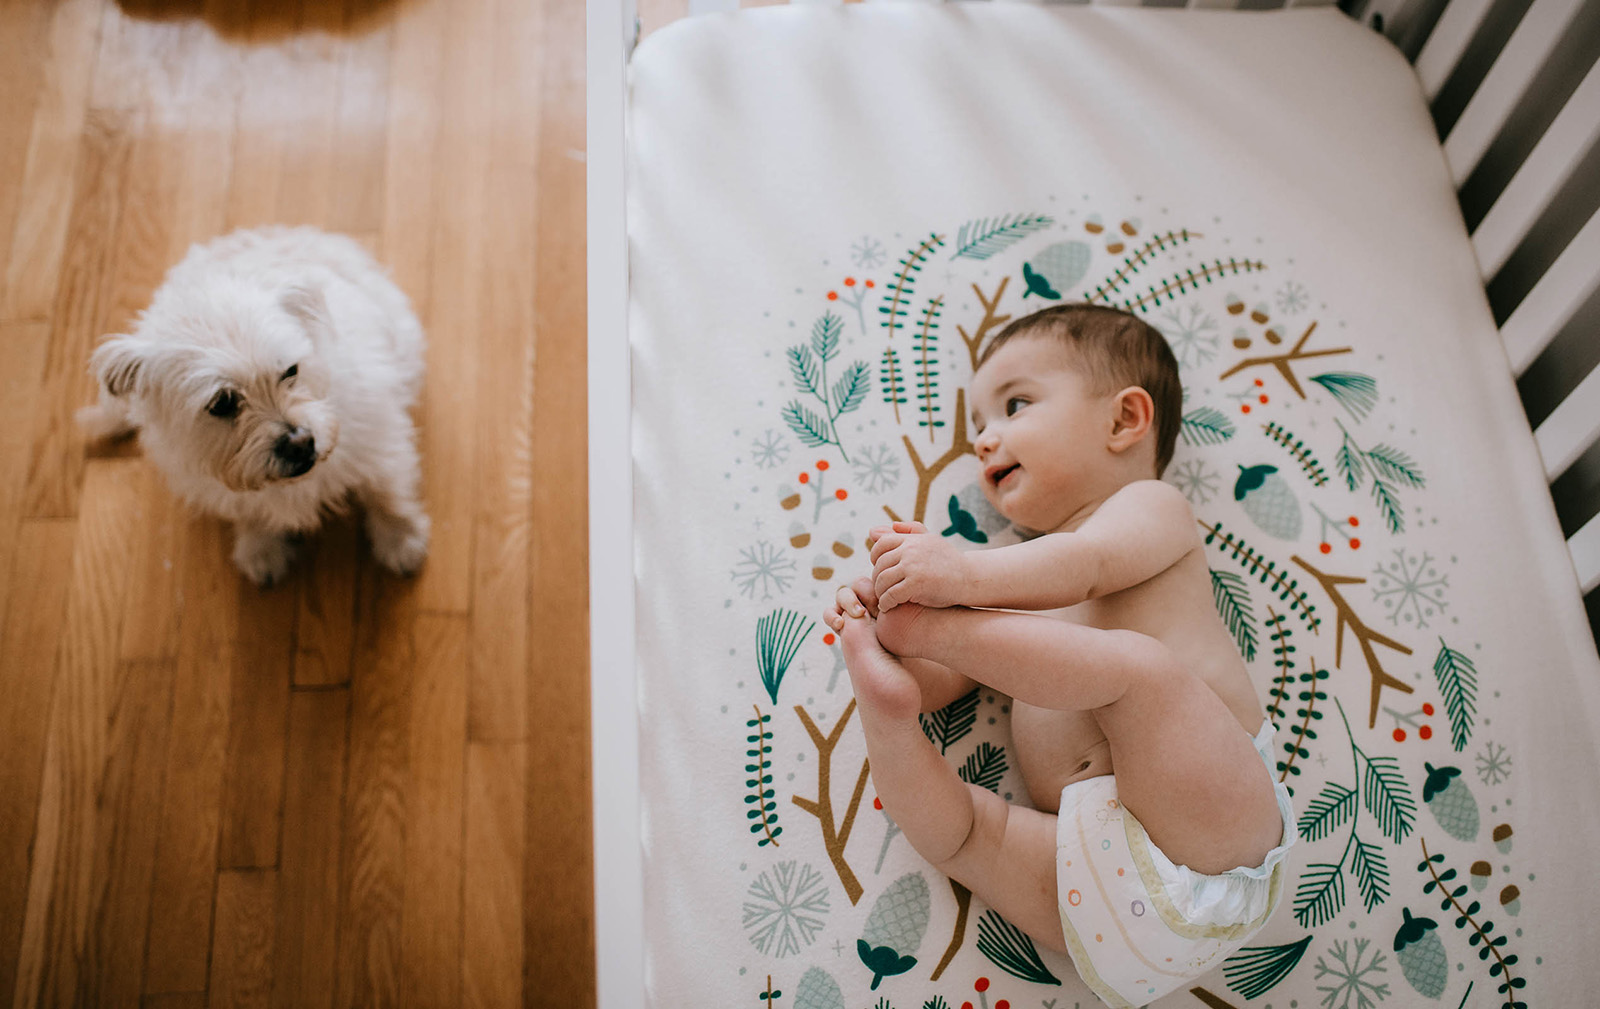 If you're struggling to successfully capture your four-legged loves with your babies, you might find some of these tips helpful.